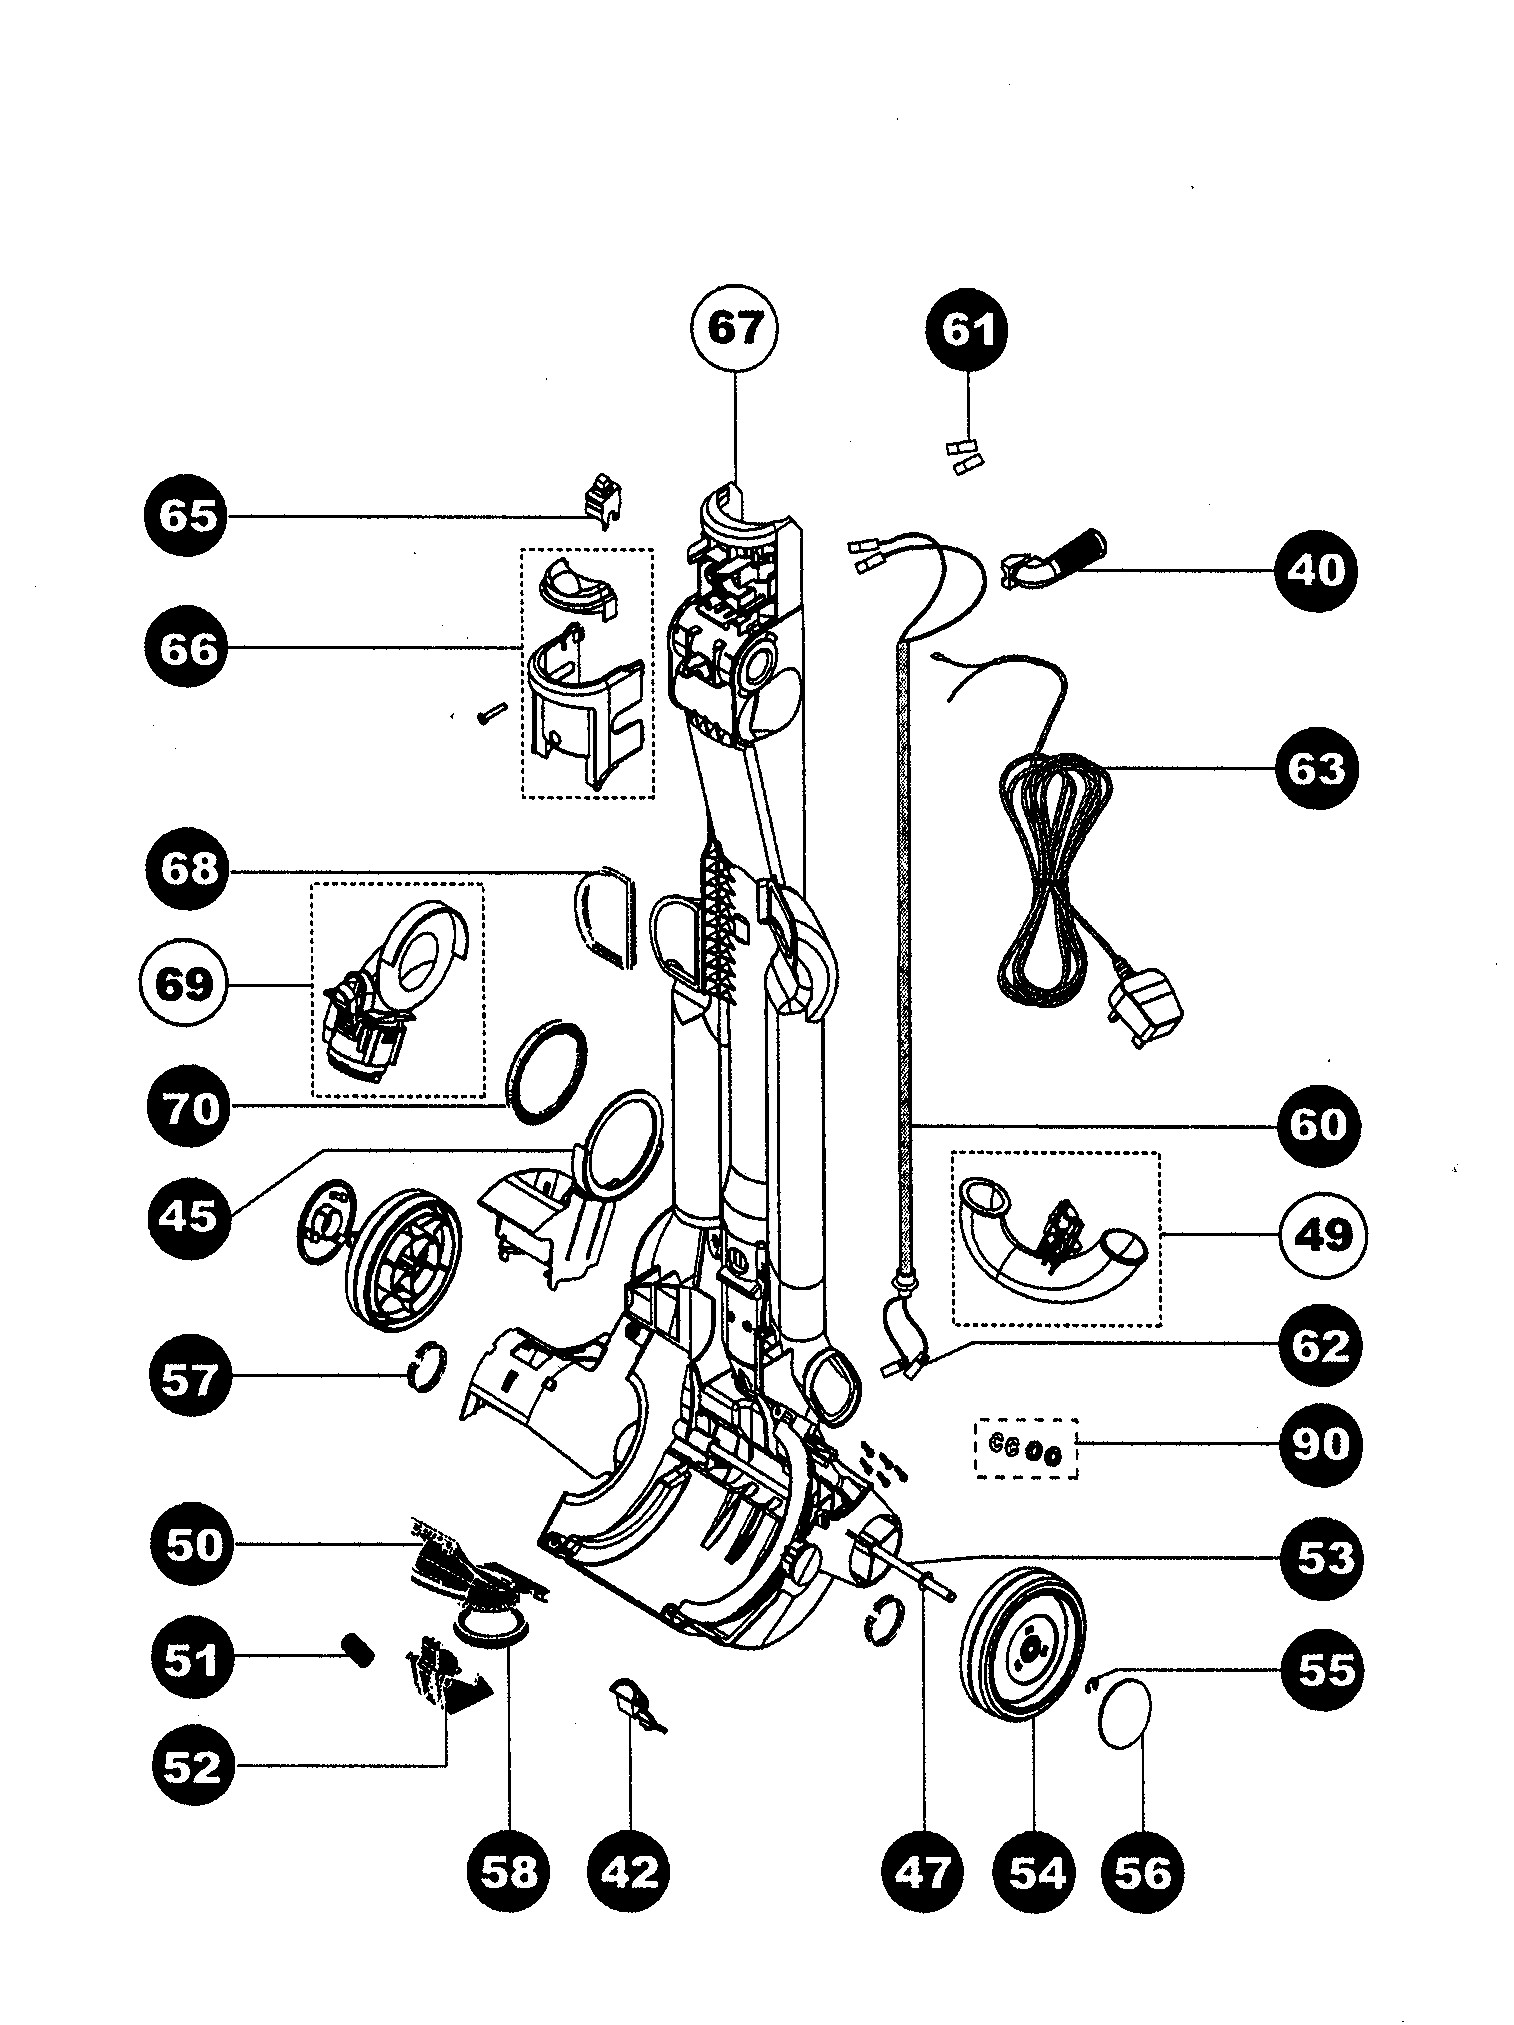 hight resolution of dyson dc25 parts diagram dc07 exploded drawings diagrams schematic of dyson dc25 parts diagram dyson dc40